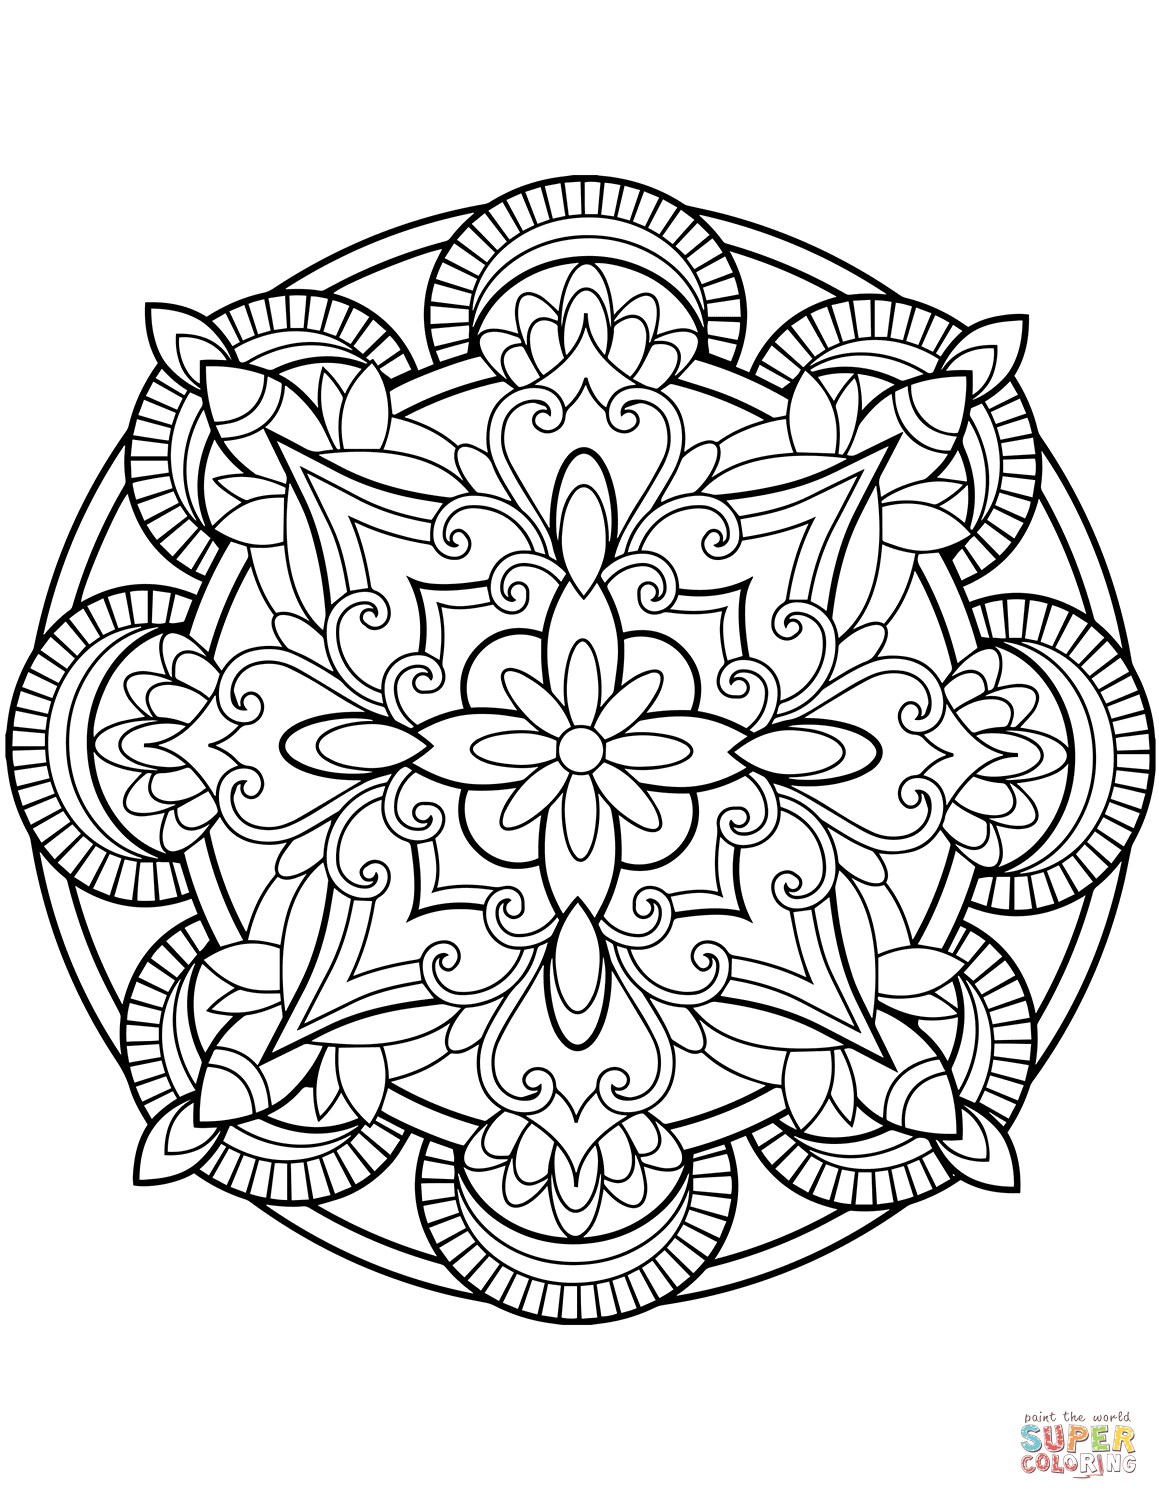 Free Printable Coloring Pages | Color a Mandala | 1500x1159